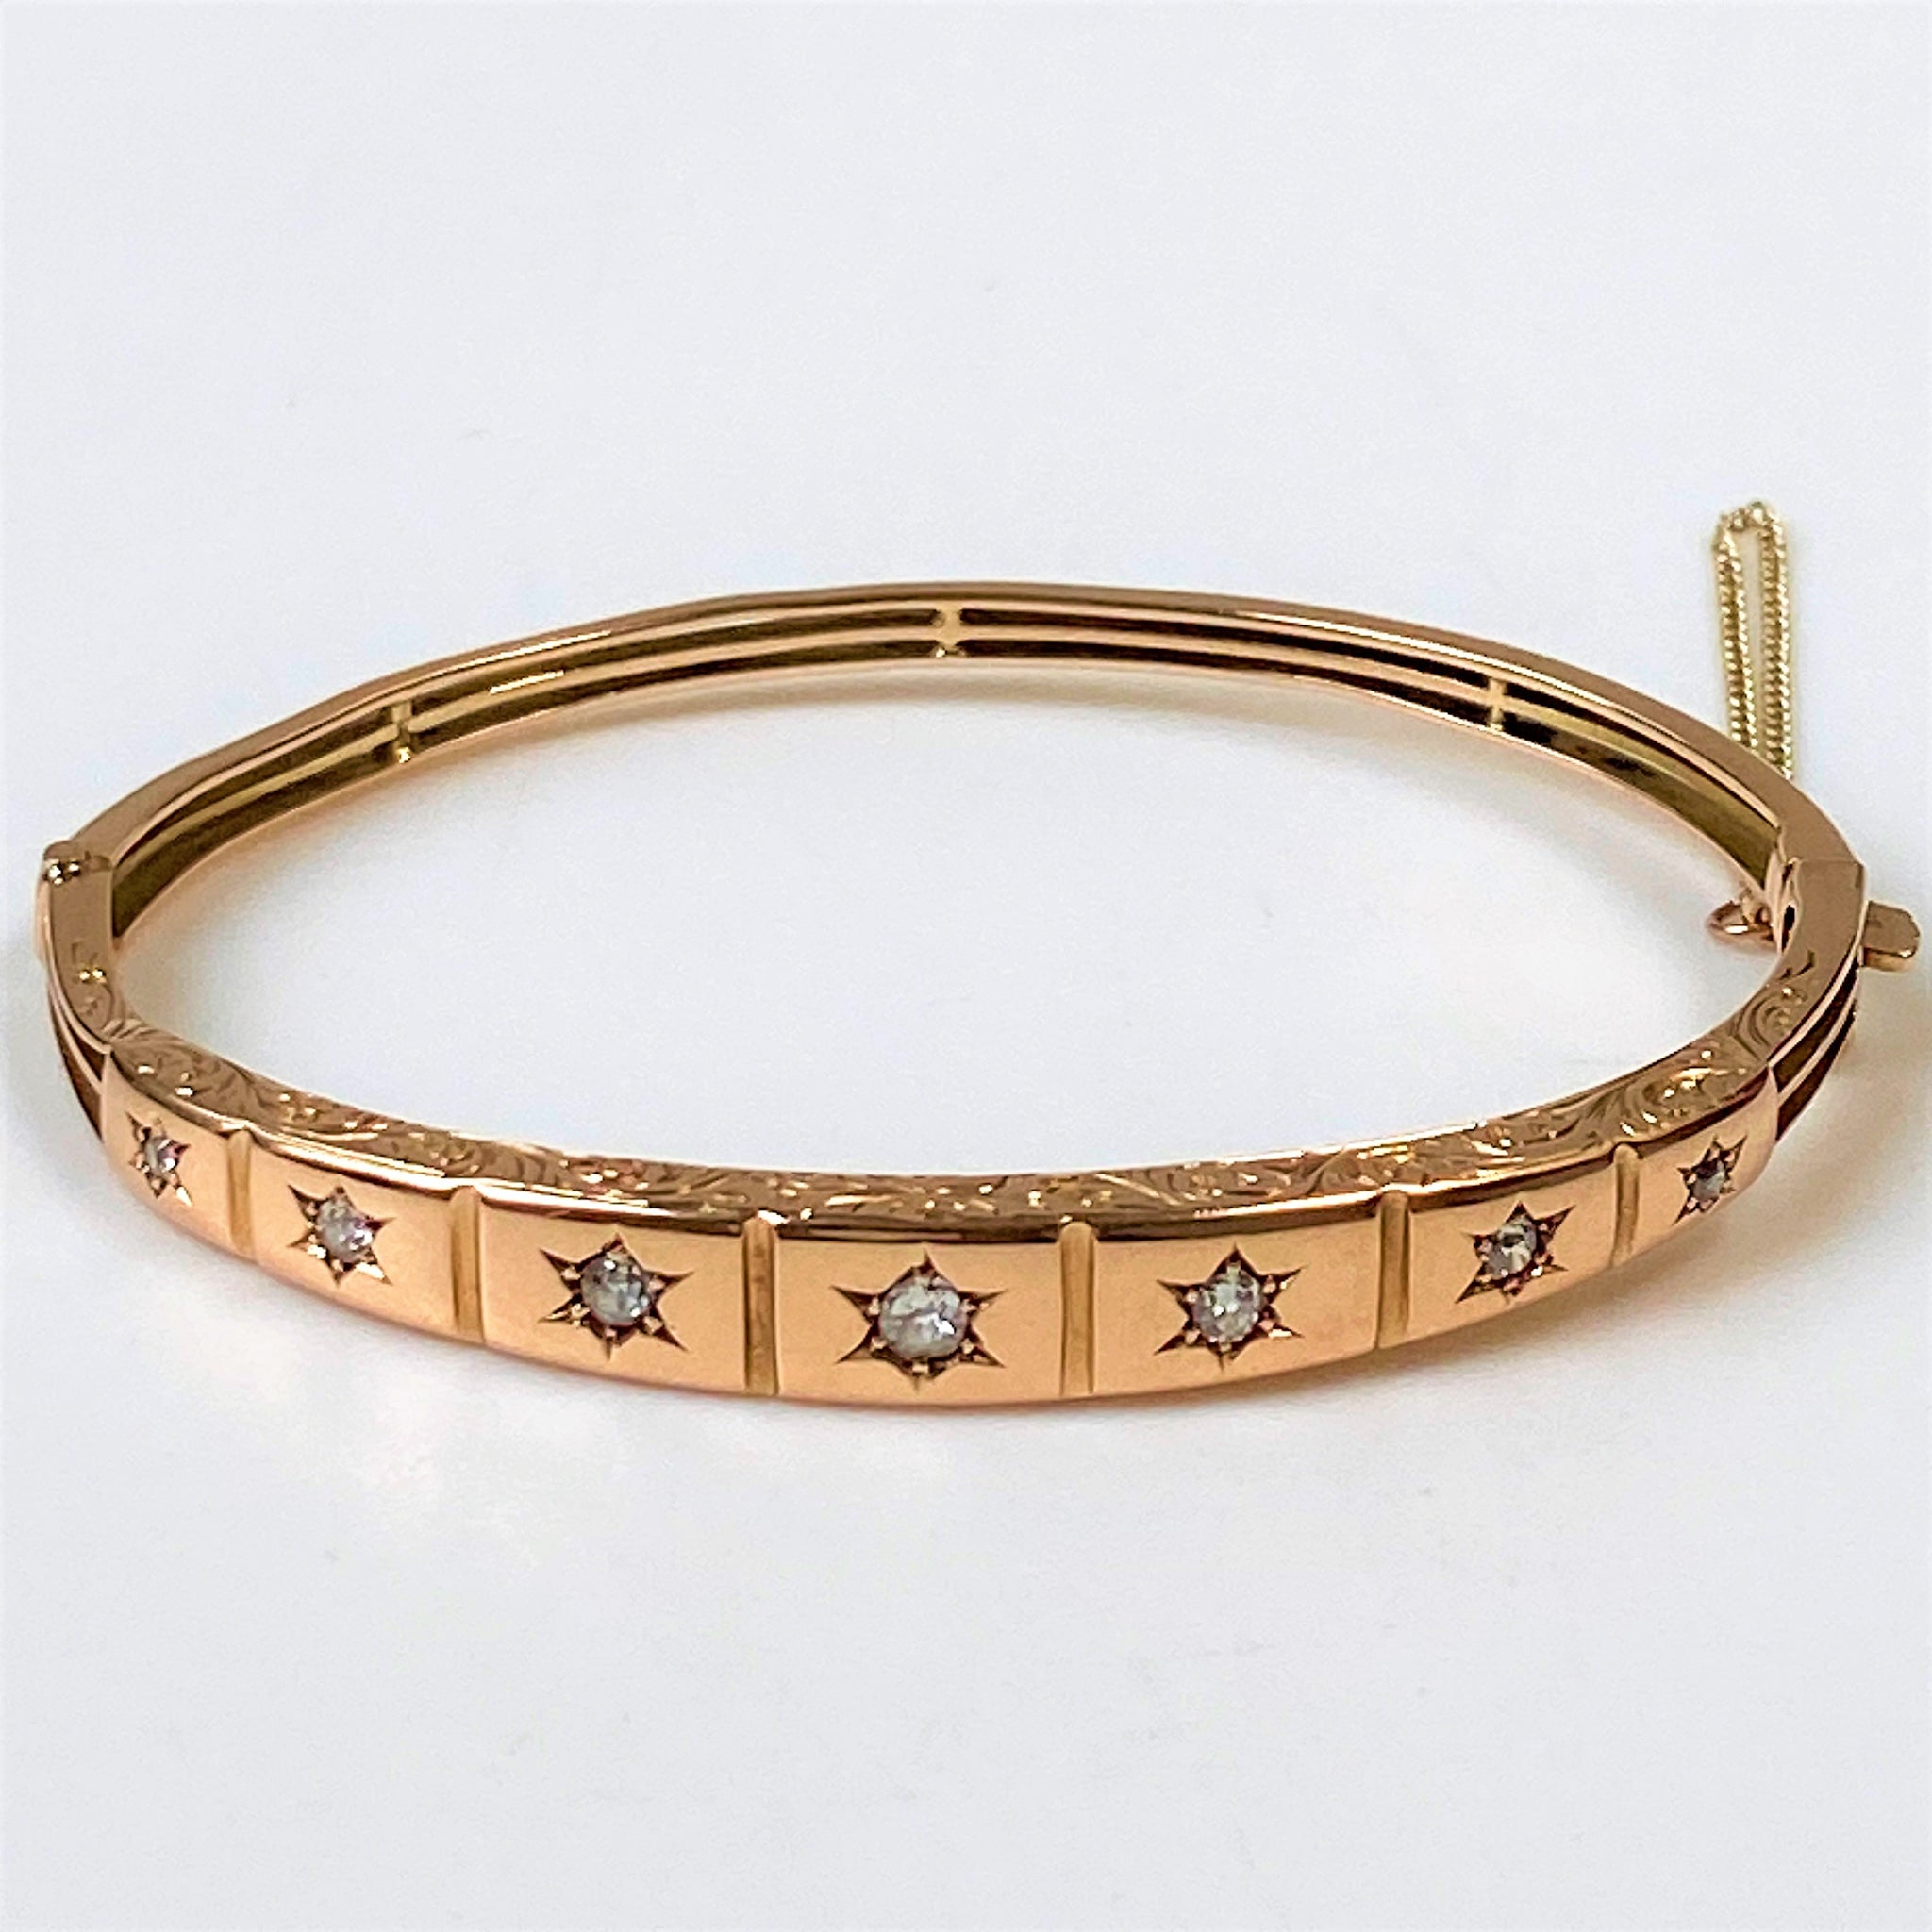 Antique 14ct Gold Hinged Bangle with Diamonds